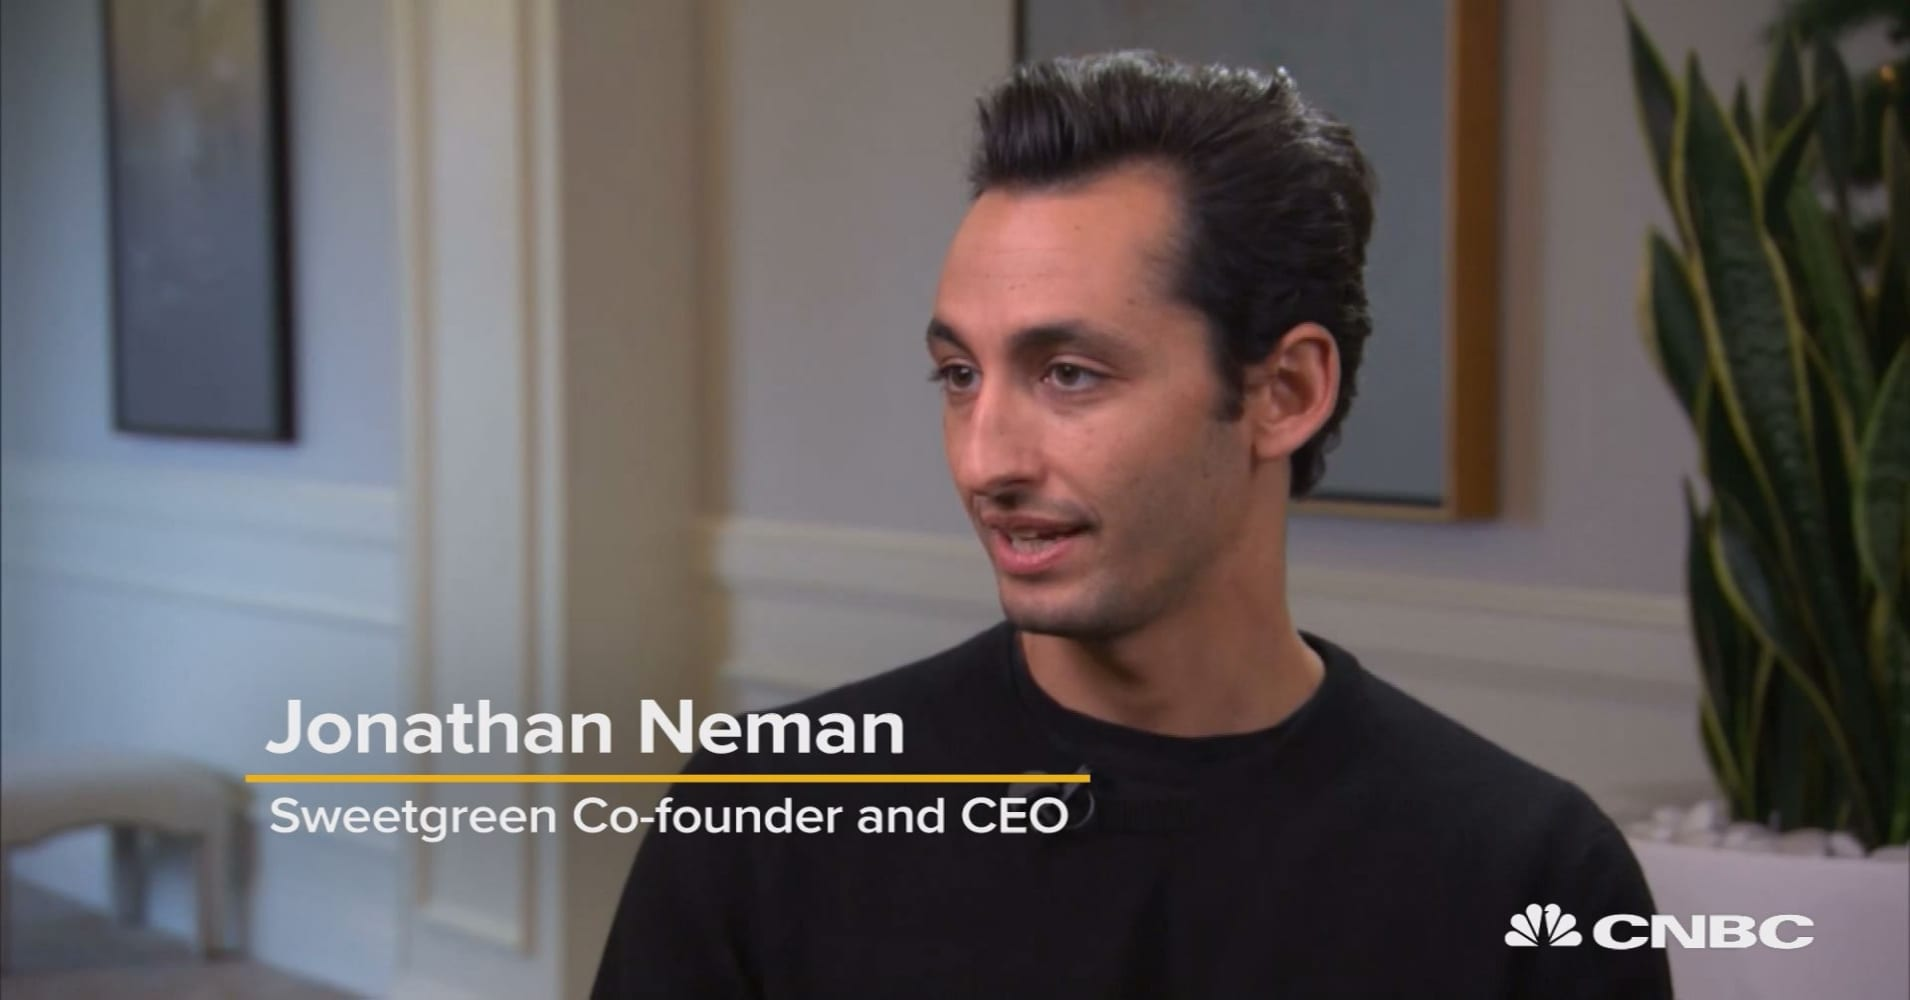 Salad chain Sweetgreen wants to evolve into a food platform, co-founder tells CNBC